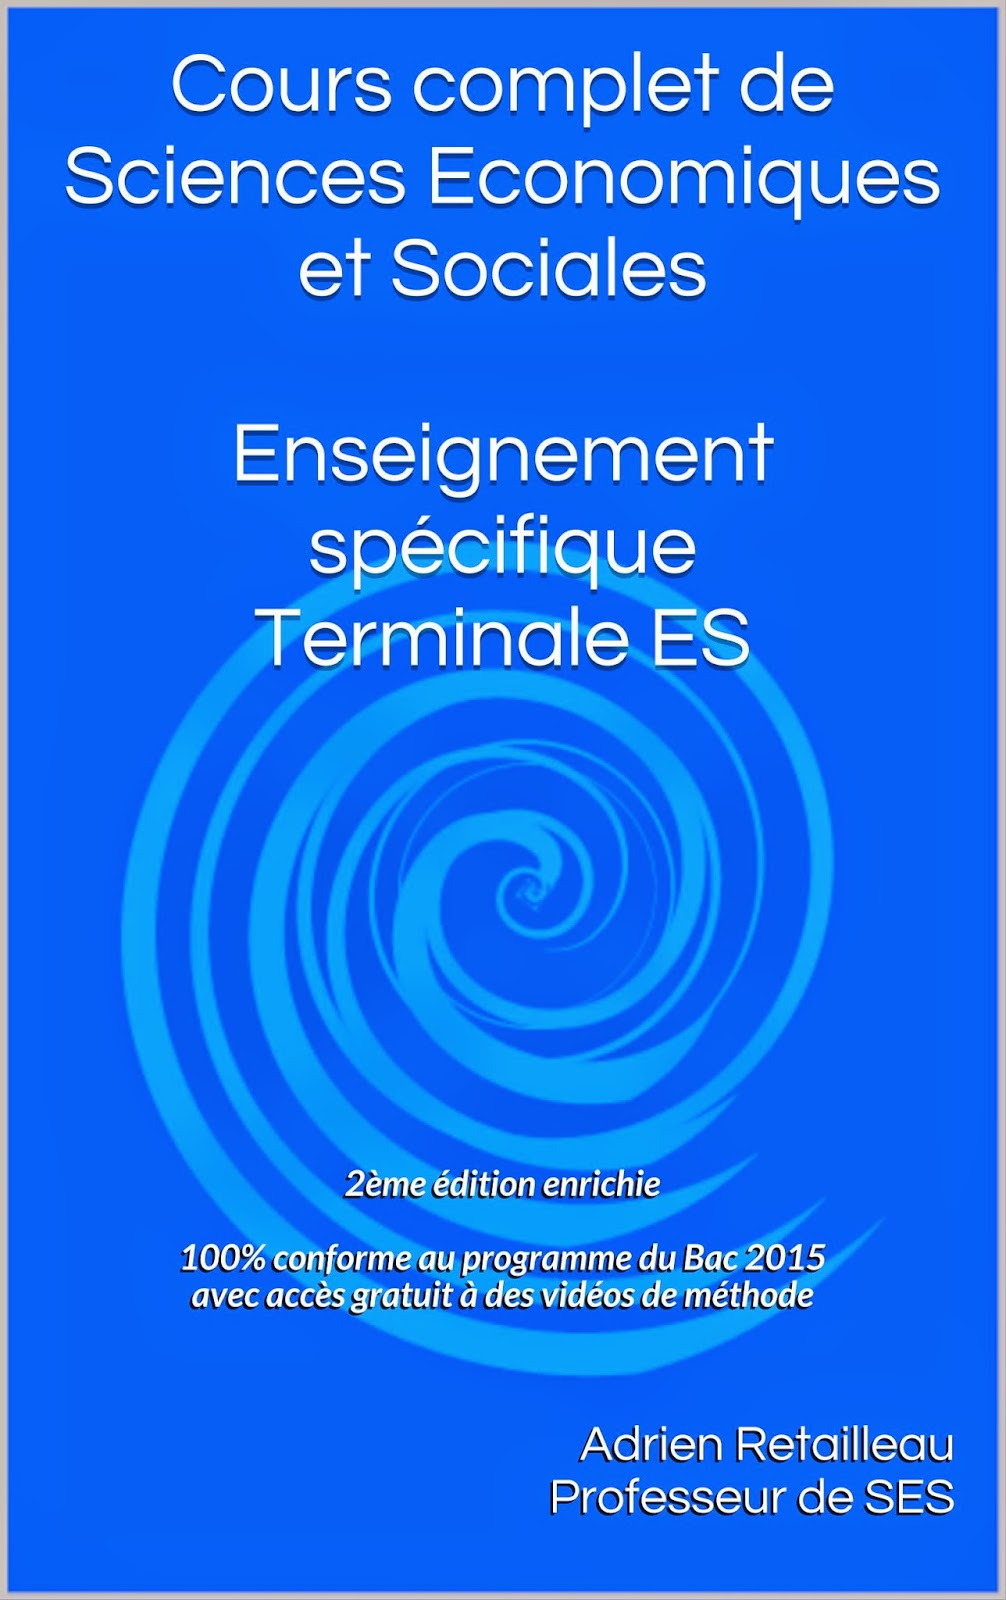 http://www.amazon.fr/Cours-complet-SES-Enseignement-ebook/dp/B00F7U1TFI/ref=sr_1_1?s=books&ie=UTF8&qid=1379577652&sr=1-1&keywords=Adrien+Retailleau